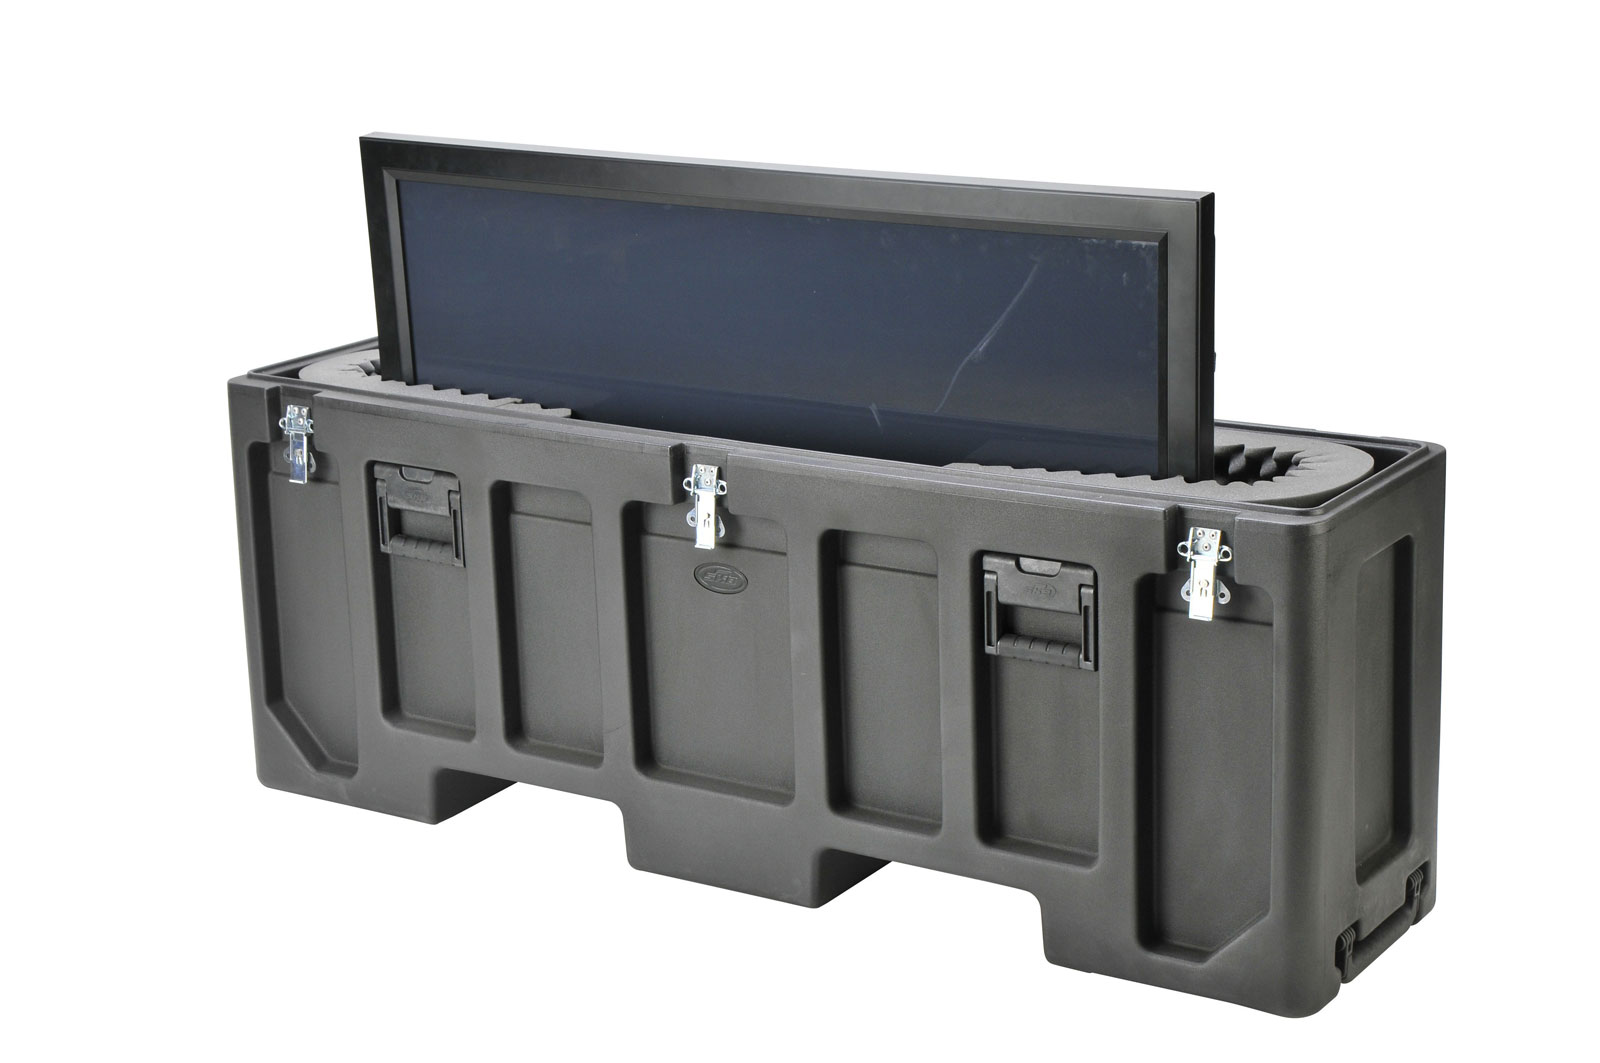 MUSIC PRO AUDIO FLAT SCREEN CASES 3SKB-5260 BLACK